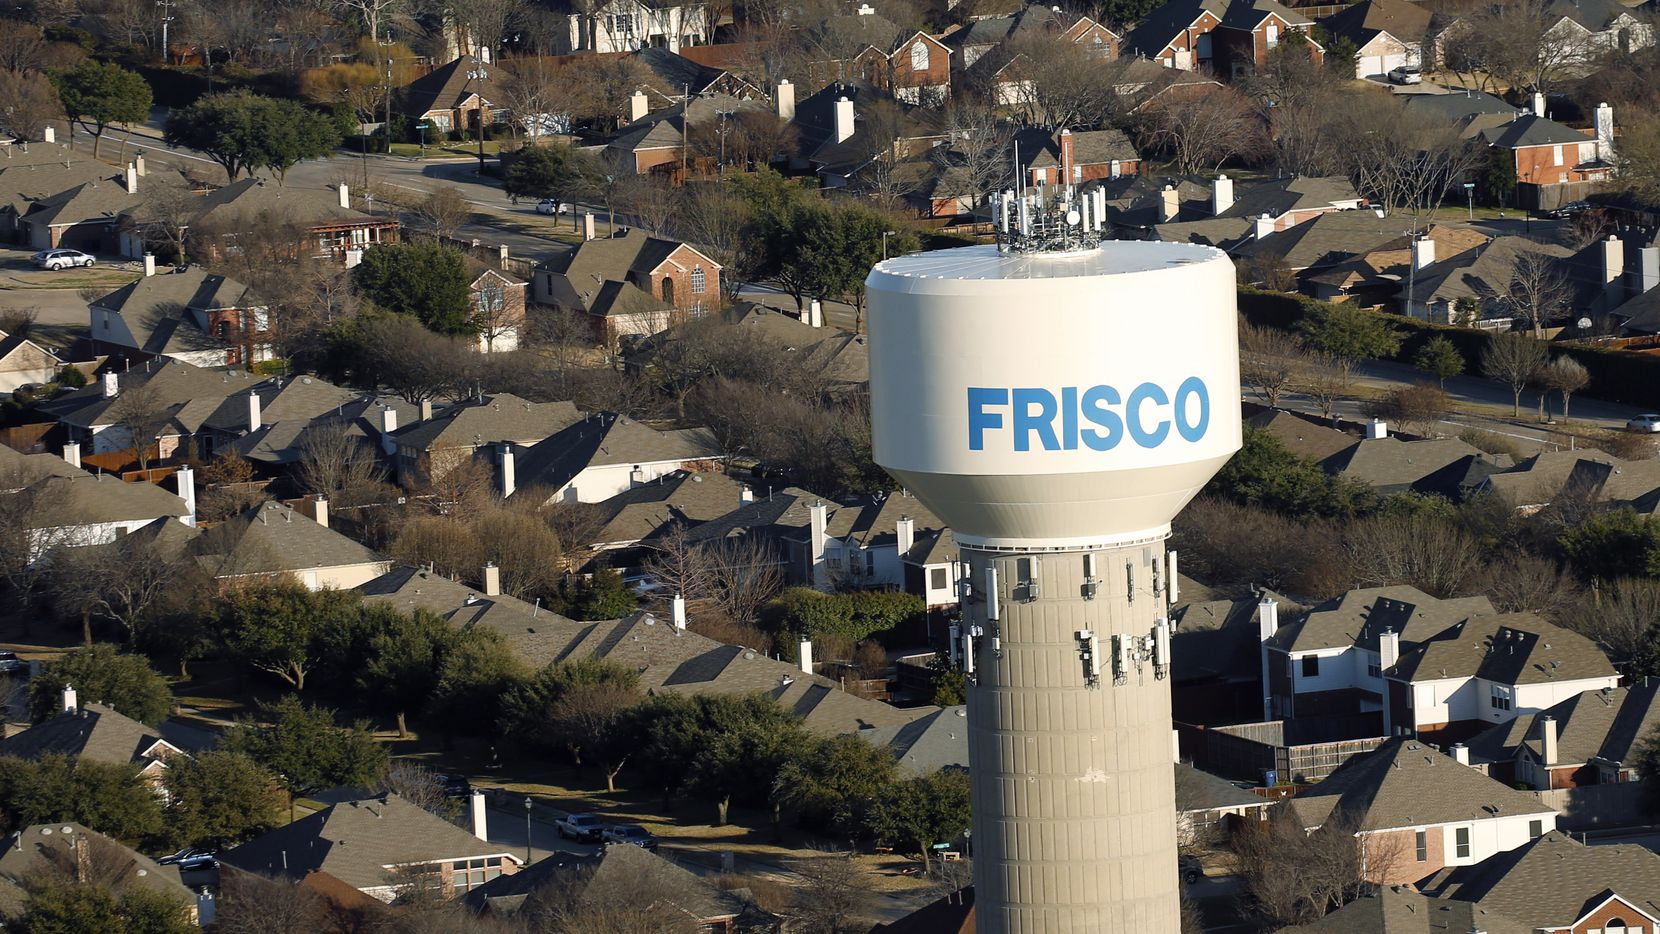 Businesses and facilities across Frisco are hosting virtual events for its community to enjoy amid the coronavirus outbreak.